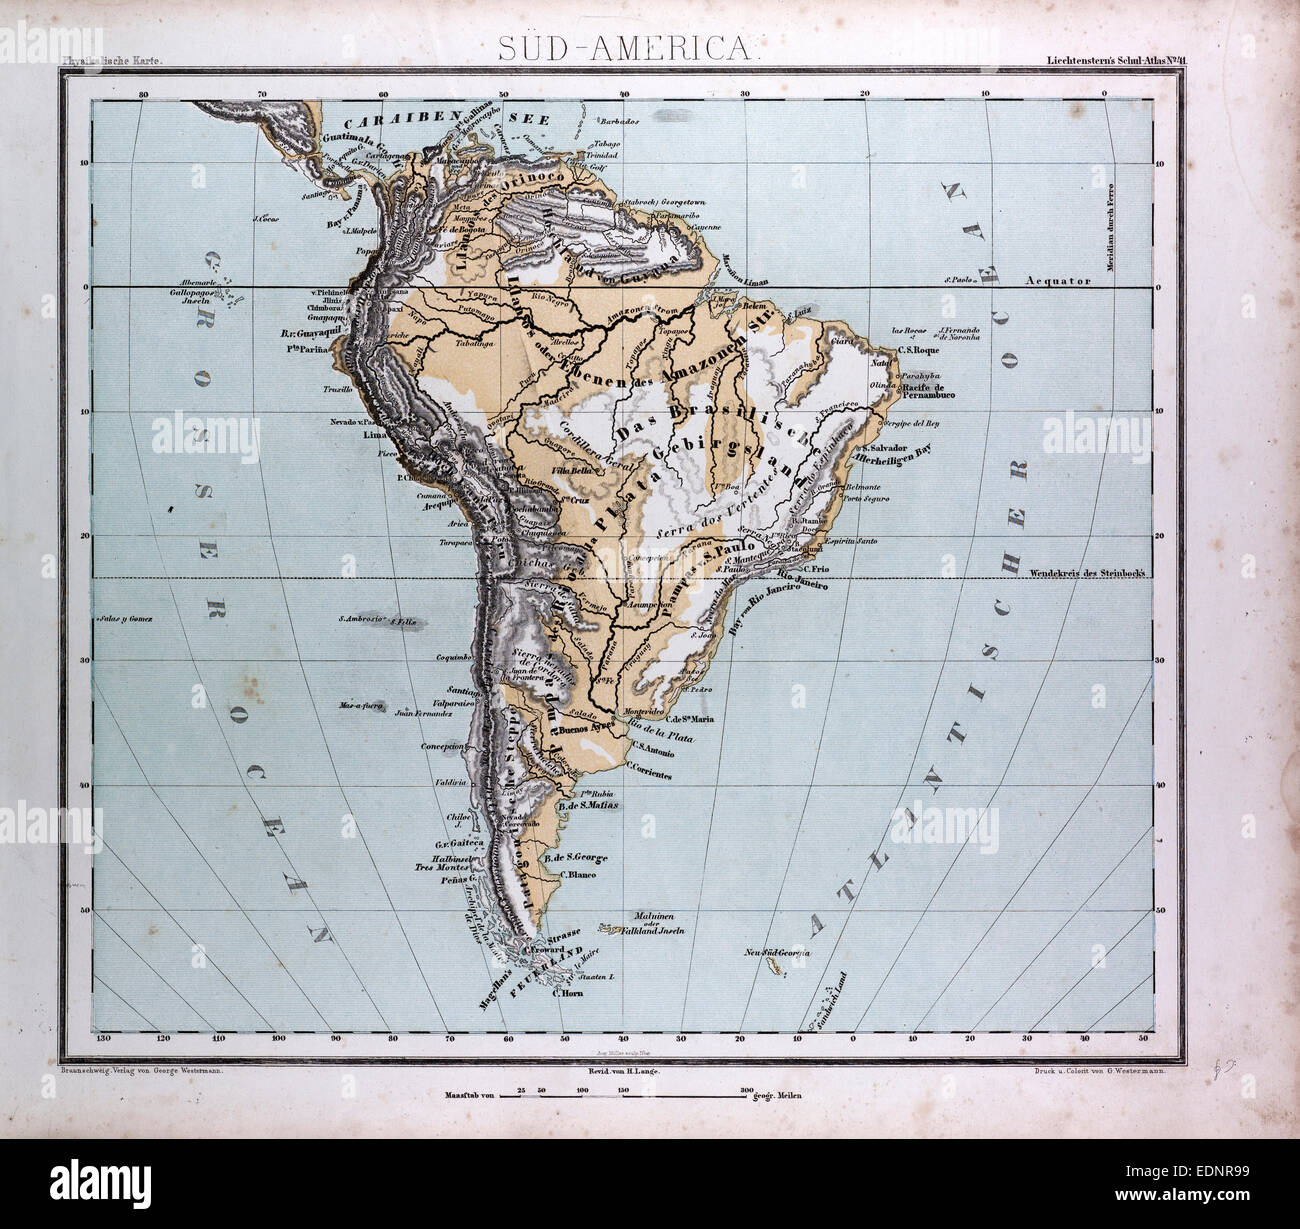 South America Map Stock Photos & South America Map Stock Images - Alamy